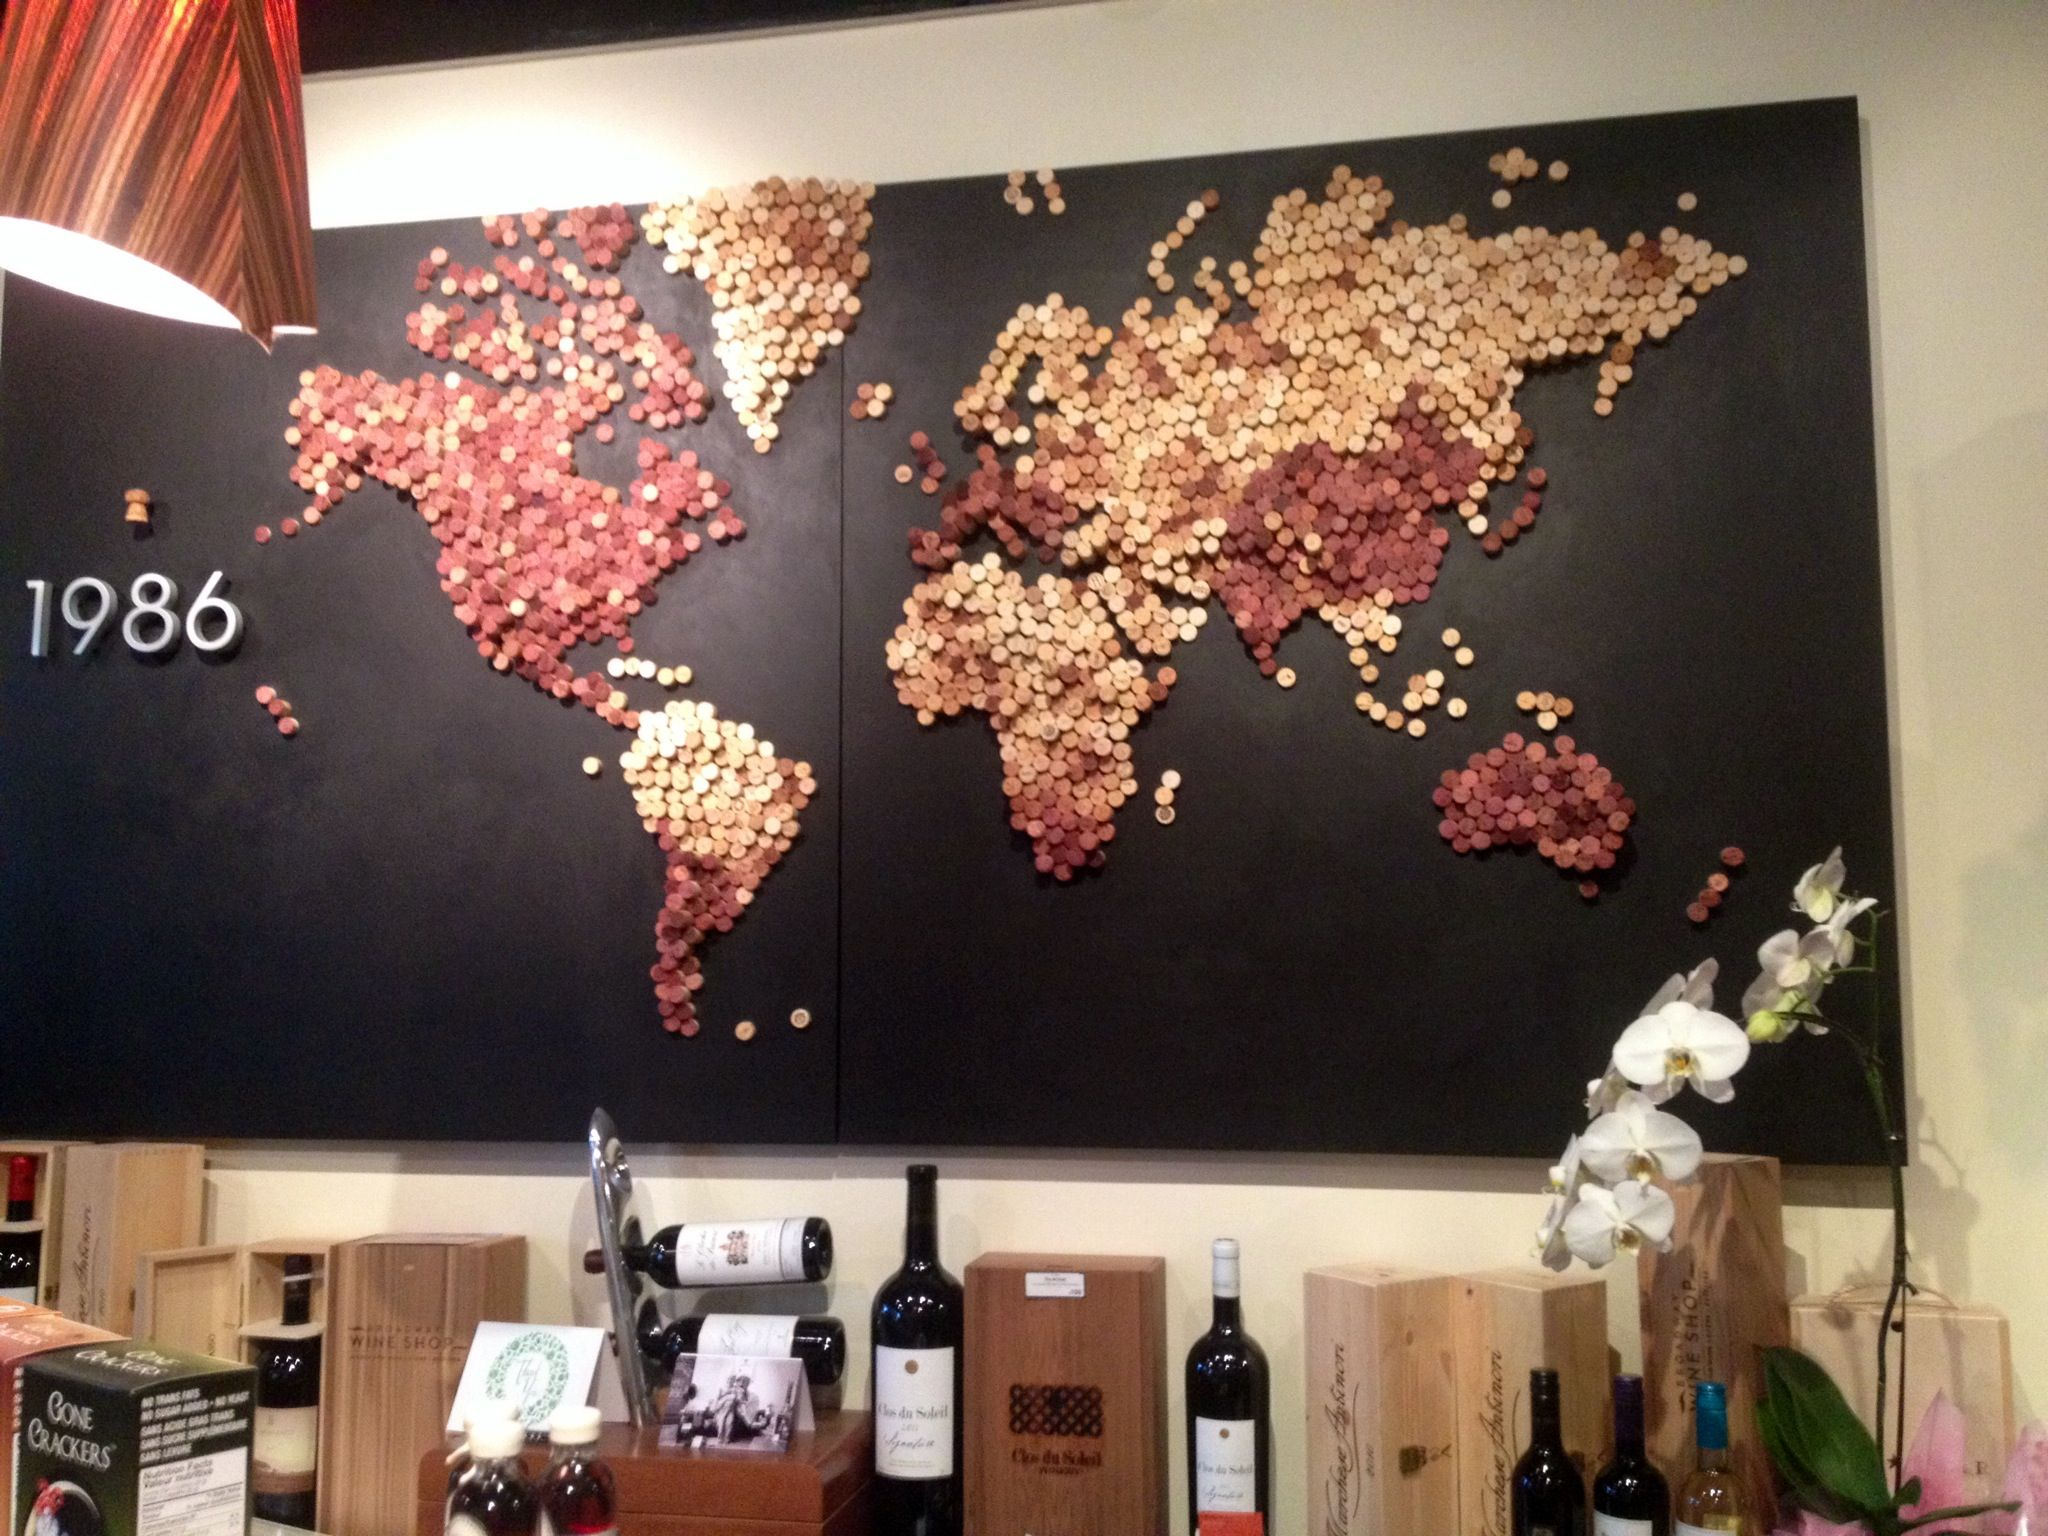 My local wine store made this with corks x oc cork